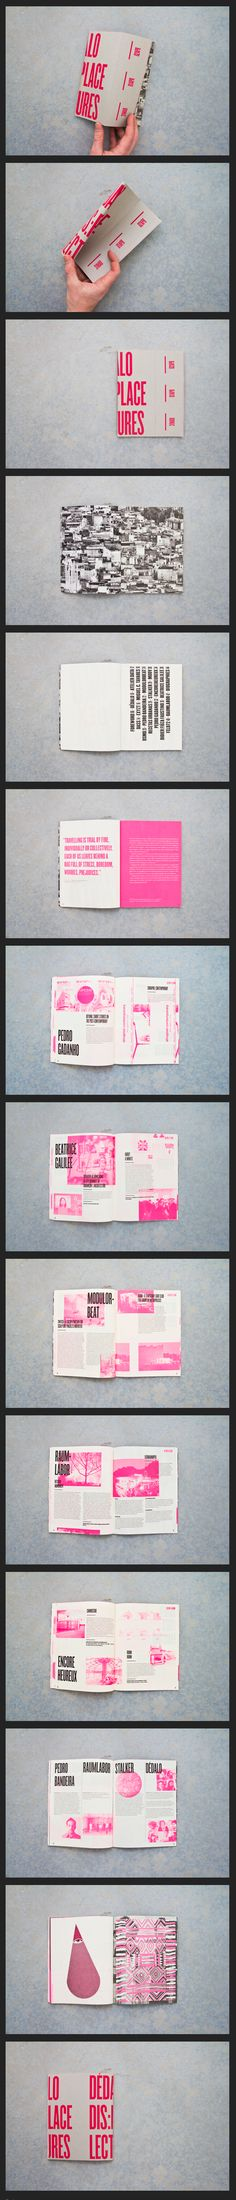 Dédalo Lectures - Joao Santos The Catalog is featured on Archizines Graphic Design Layouts, Brochure Design, Graphic Design Inspiration, Typography Layout, Graphic Design Typography, Editorial Layout, Editorial Design, Glitch Art, Folders